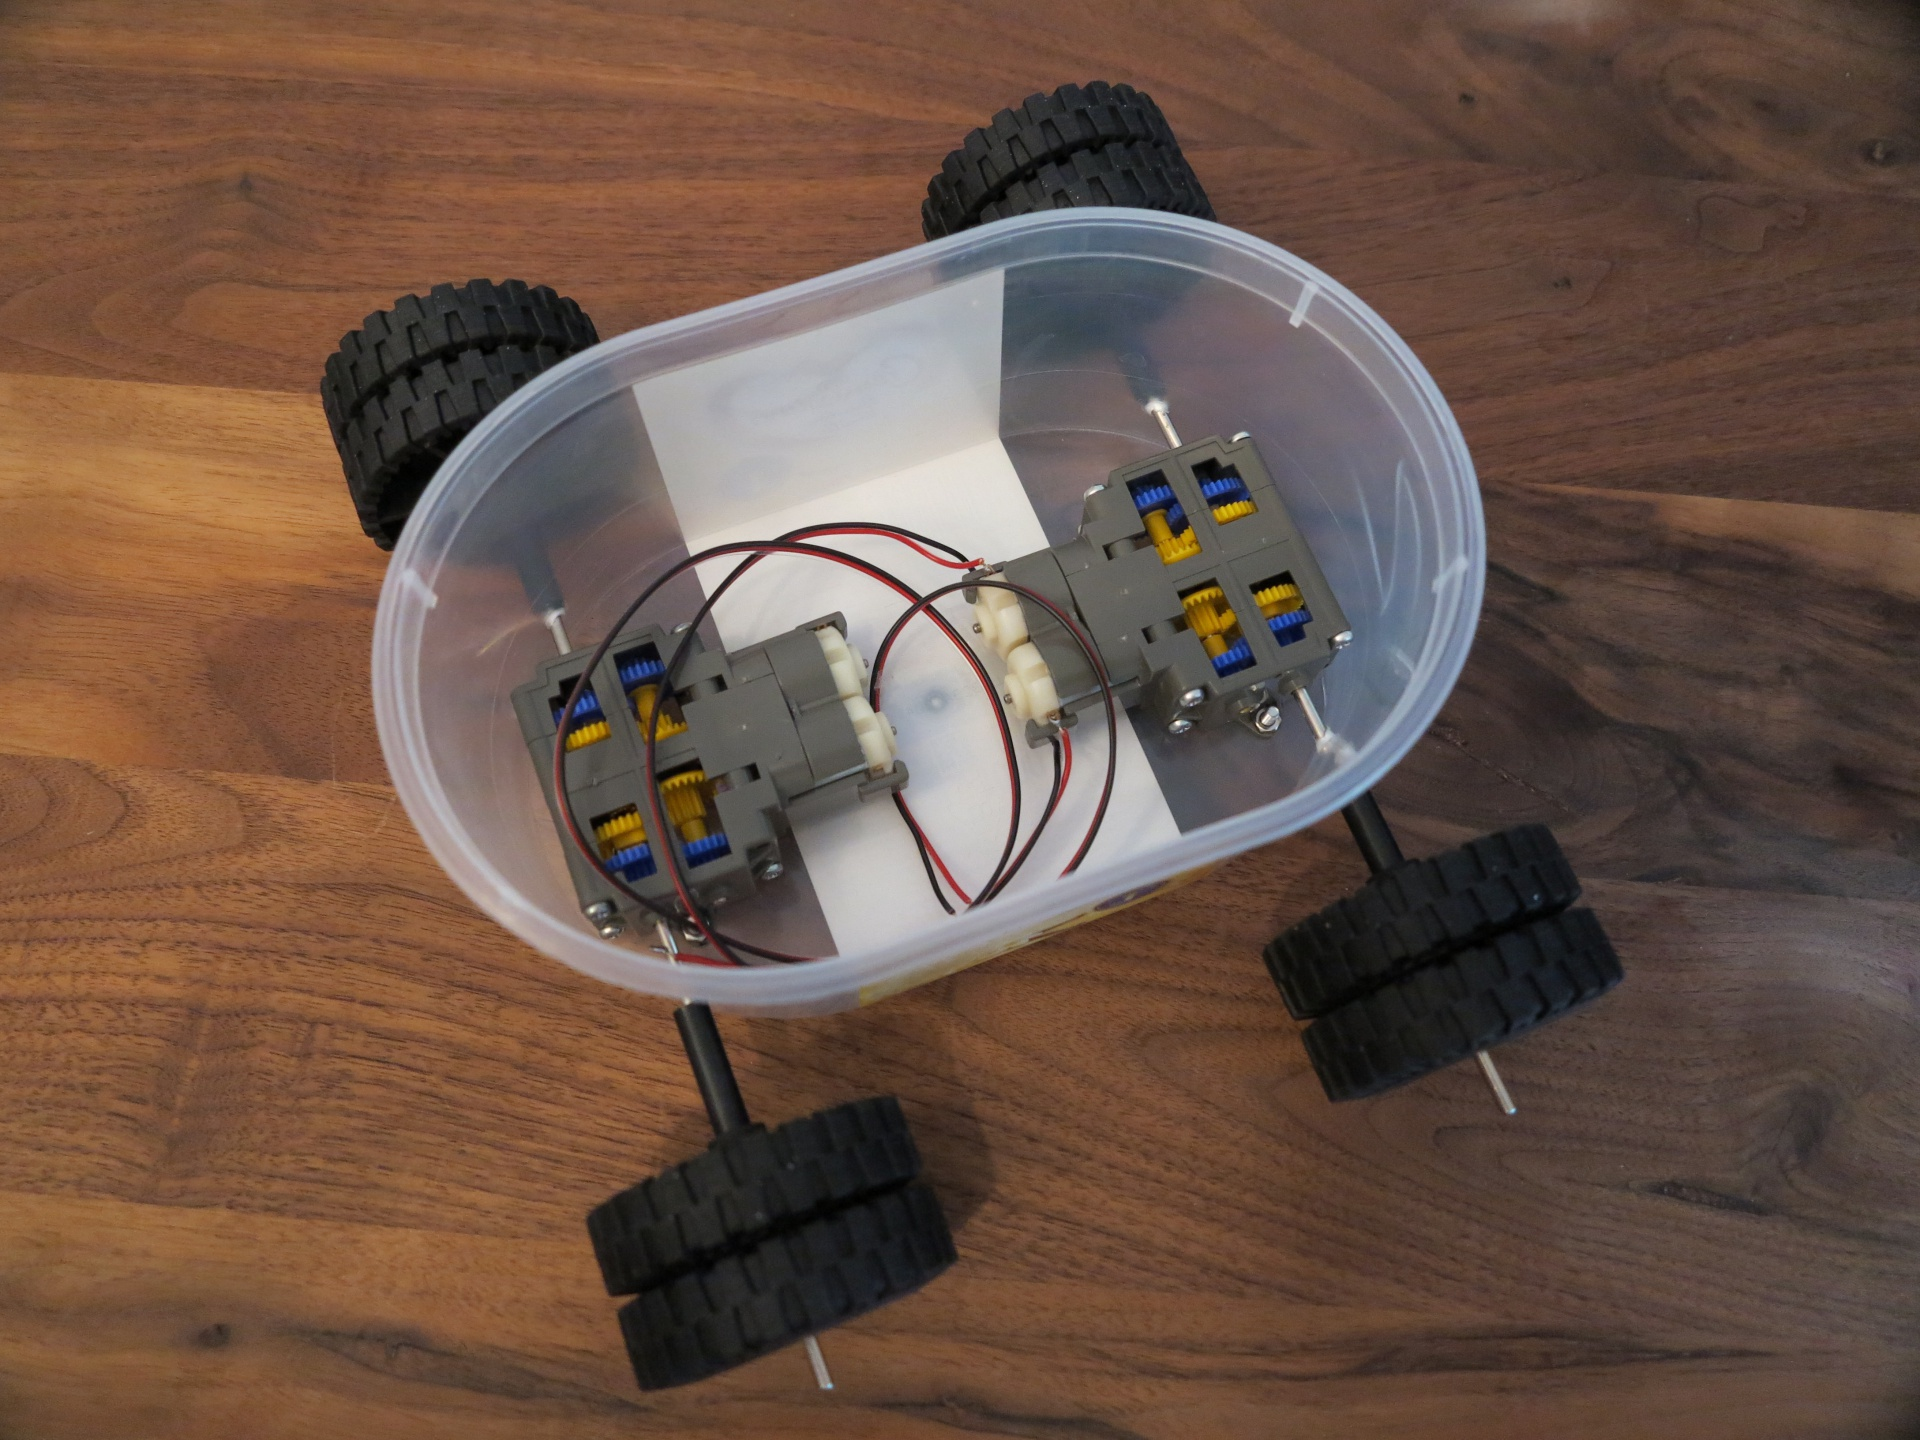 raspberry pi wifi radio controlled rc vehicle chassis. Black Bedroom Furniture Sets. Home Design Ideas